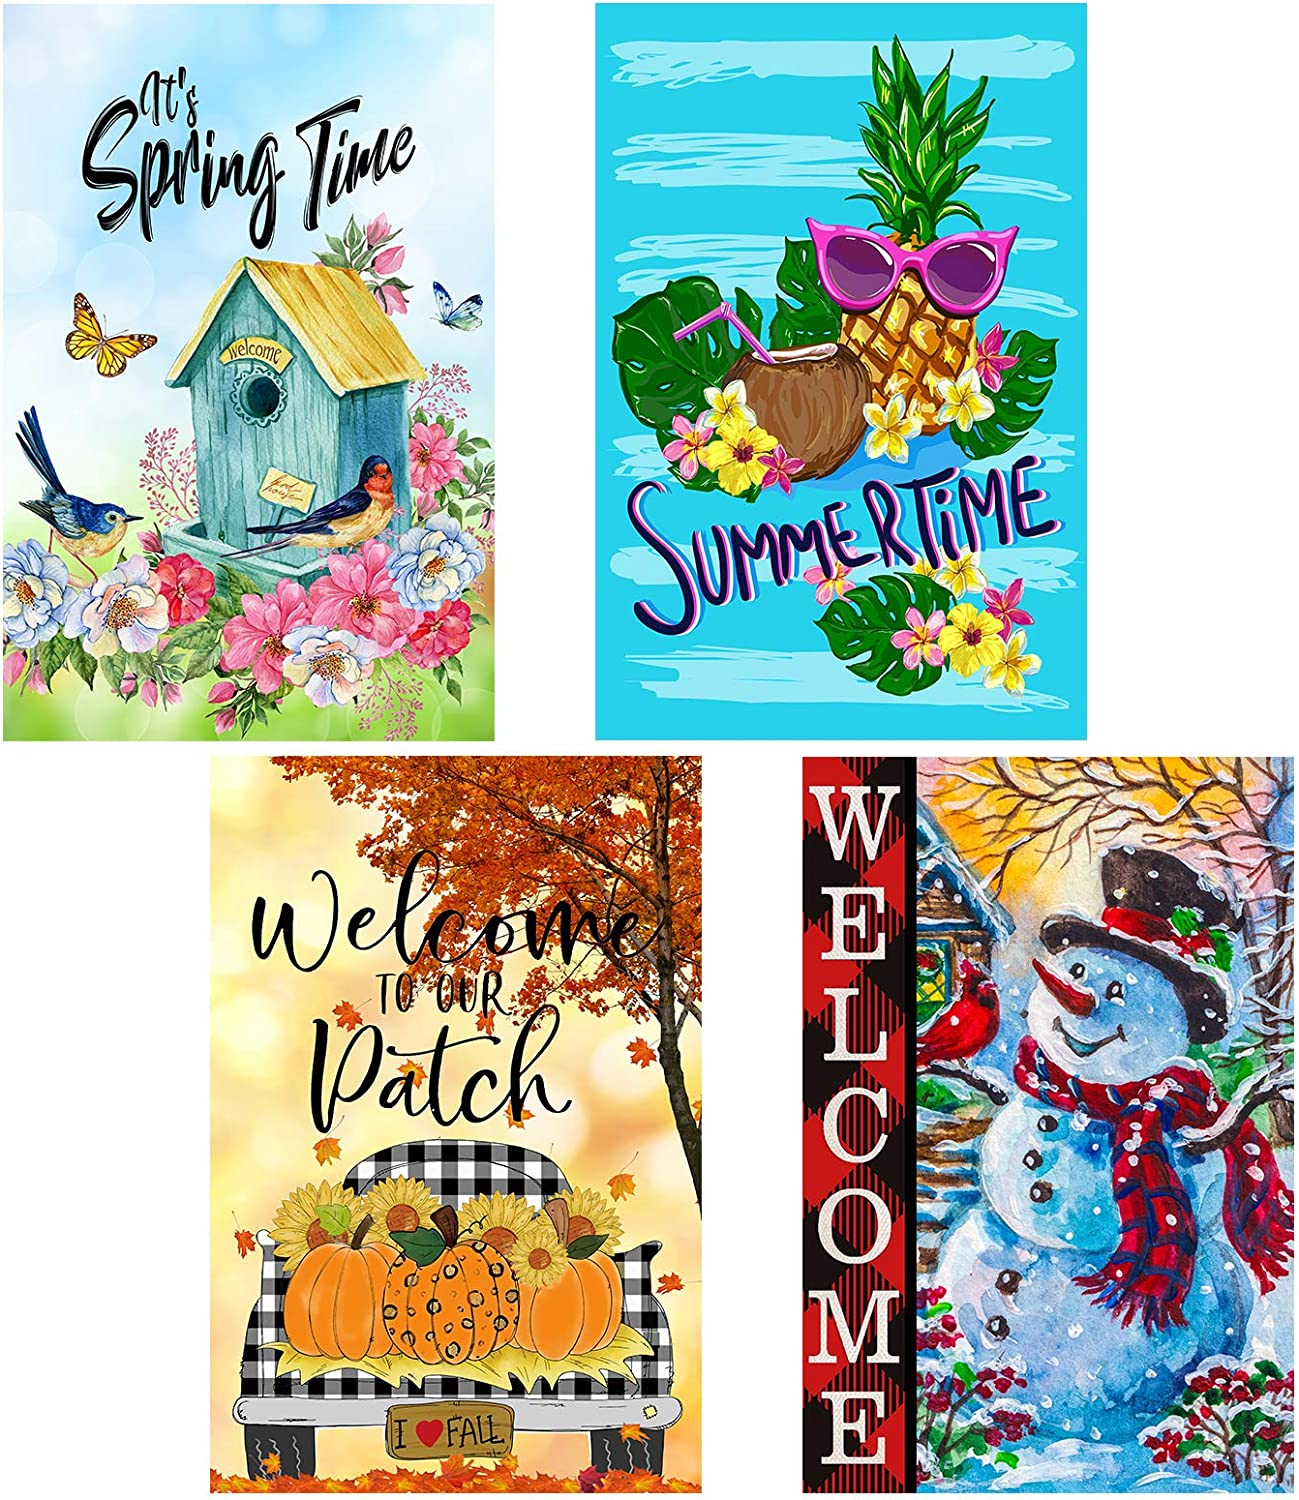 Yileqi 4 Pack Seasonal Garden Flags Set Double Sided Welcome Spring Summer Fall Winter Garden Flag, Small Yard Flag for Outdoor Decorations 12.5x18 Inch, Fade Weather Resistant